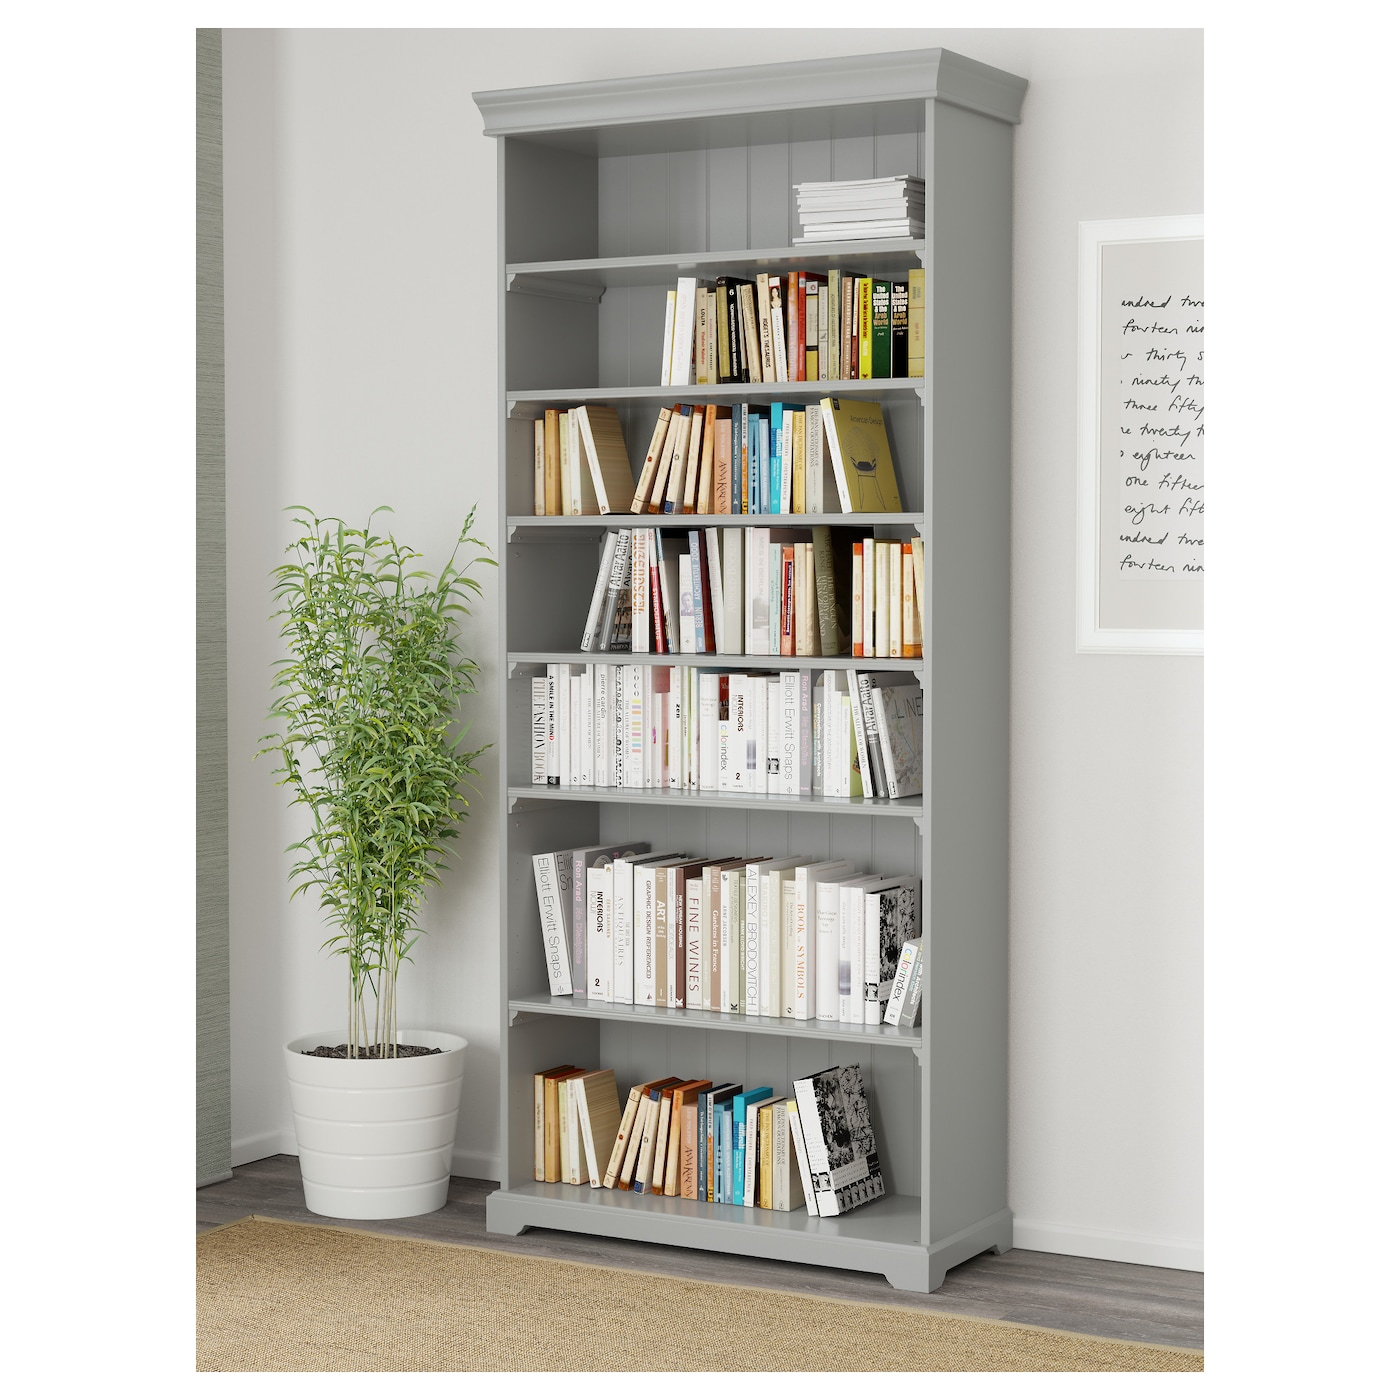 g onit grey oak bookcase narrow furniture small contemporary tt product snb